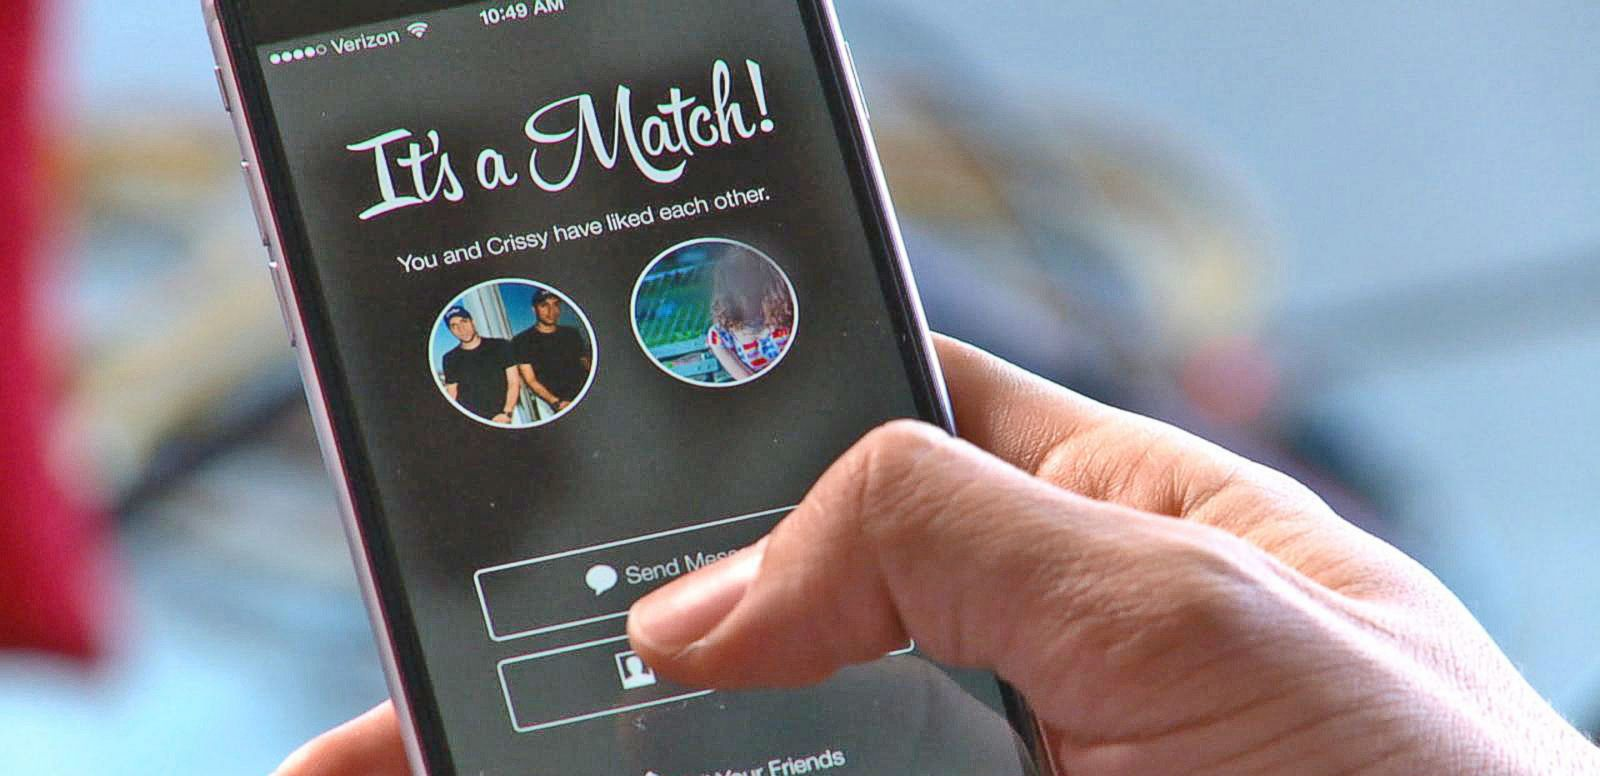 VIDEO: Tinder Adds New Desirability Rating Code